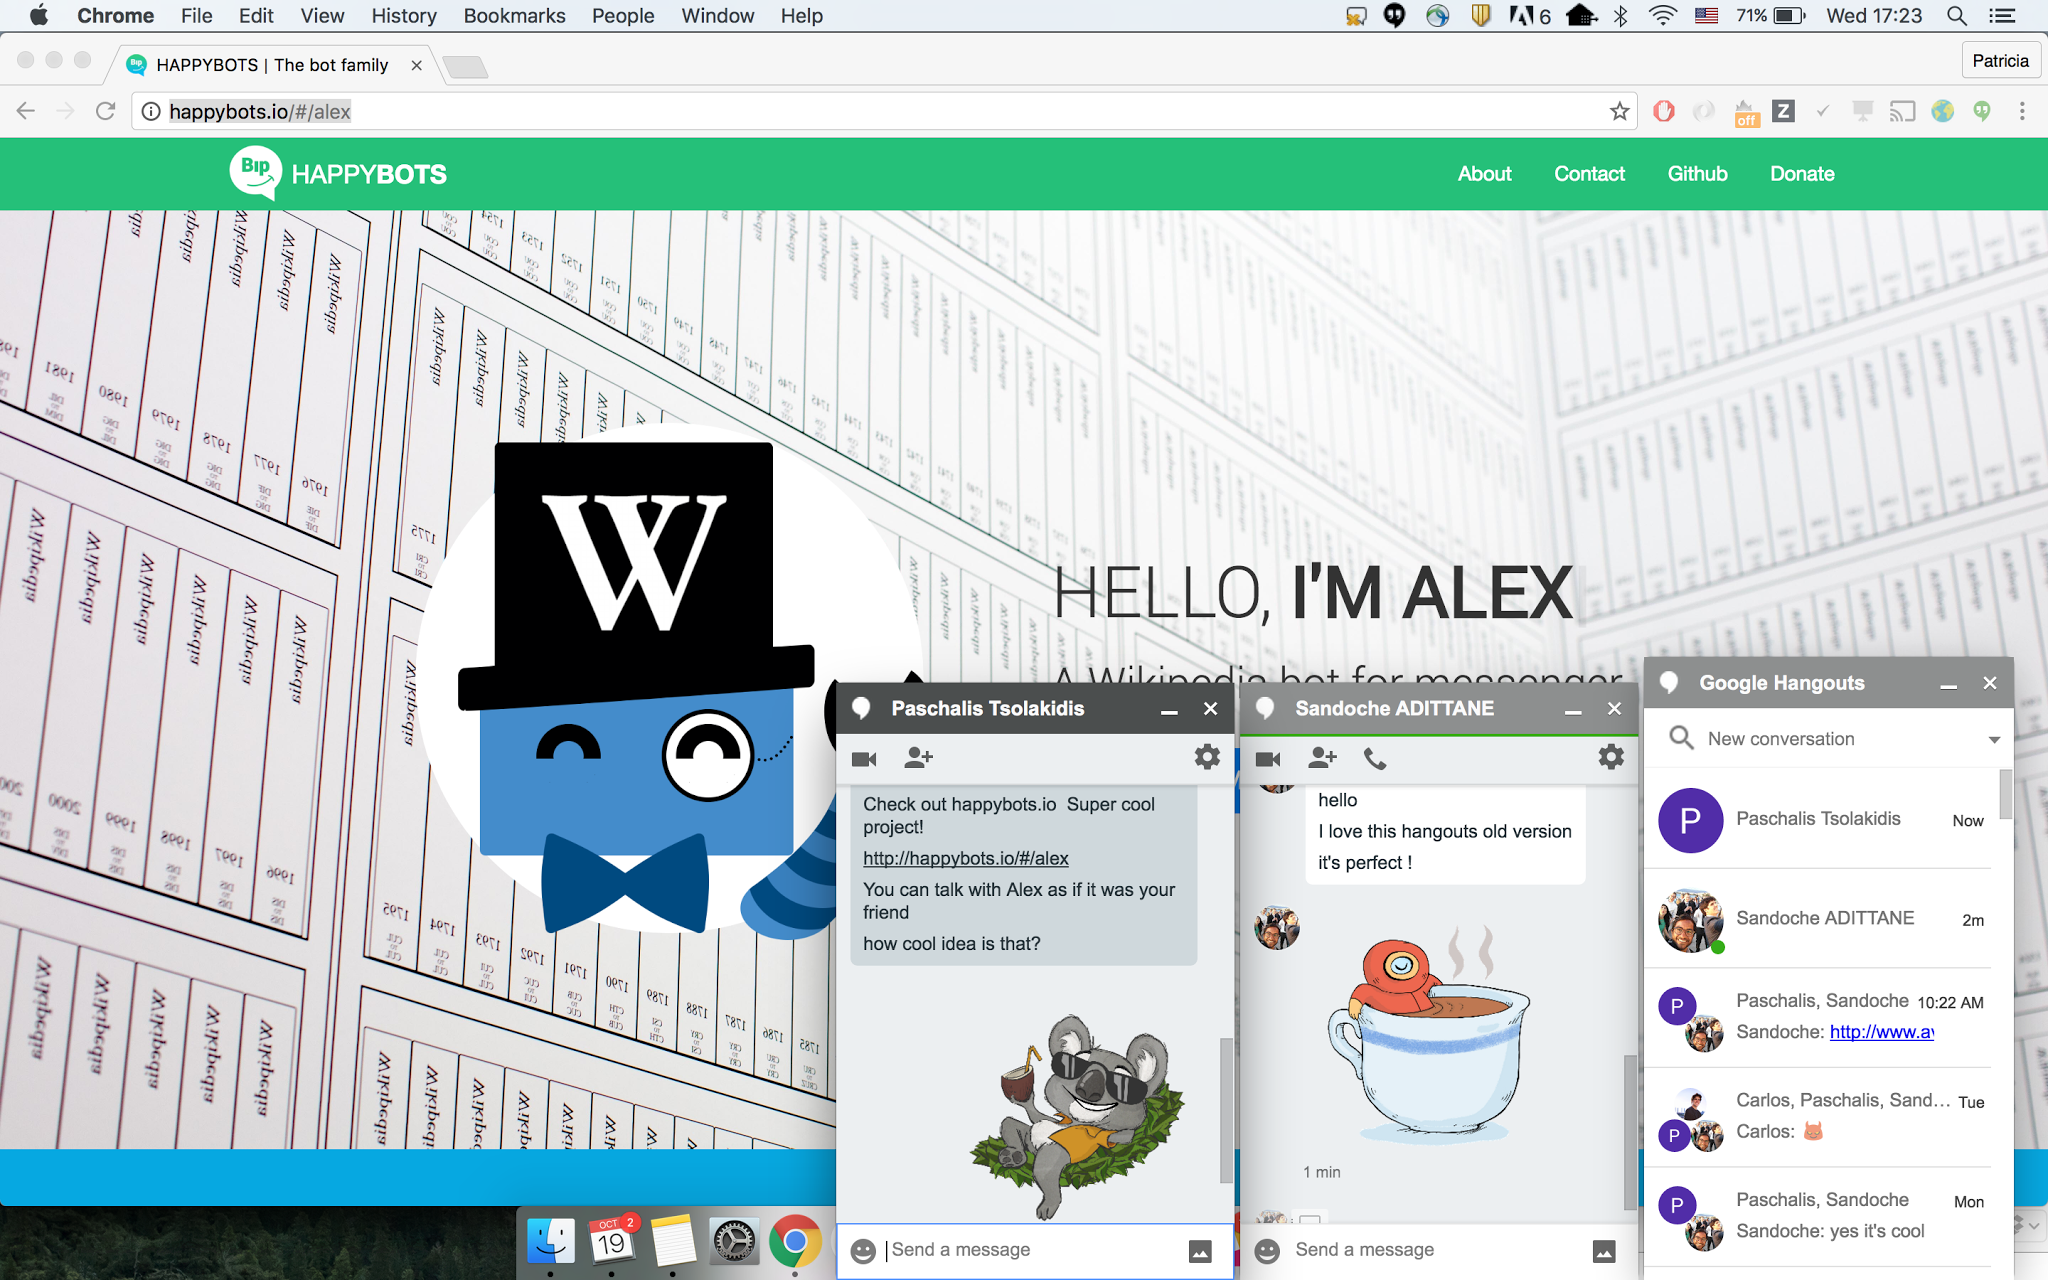 How To Get The Old Hangouts Chrome Extension Back